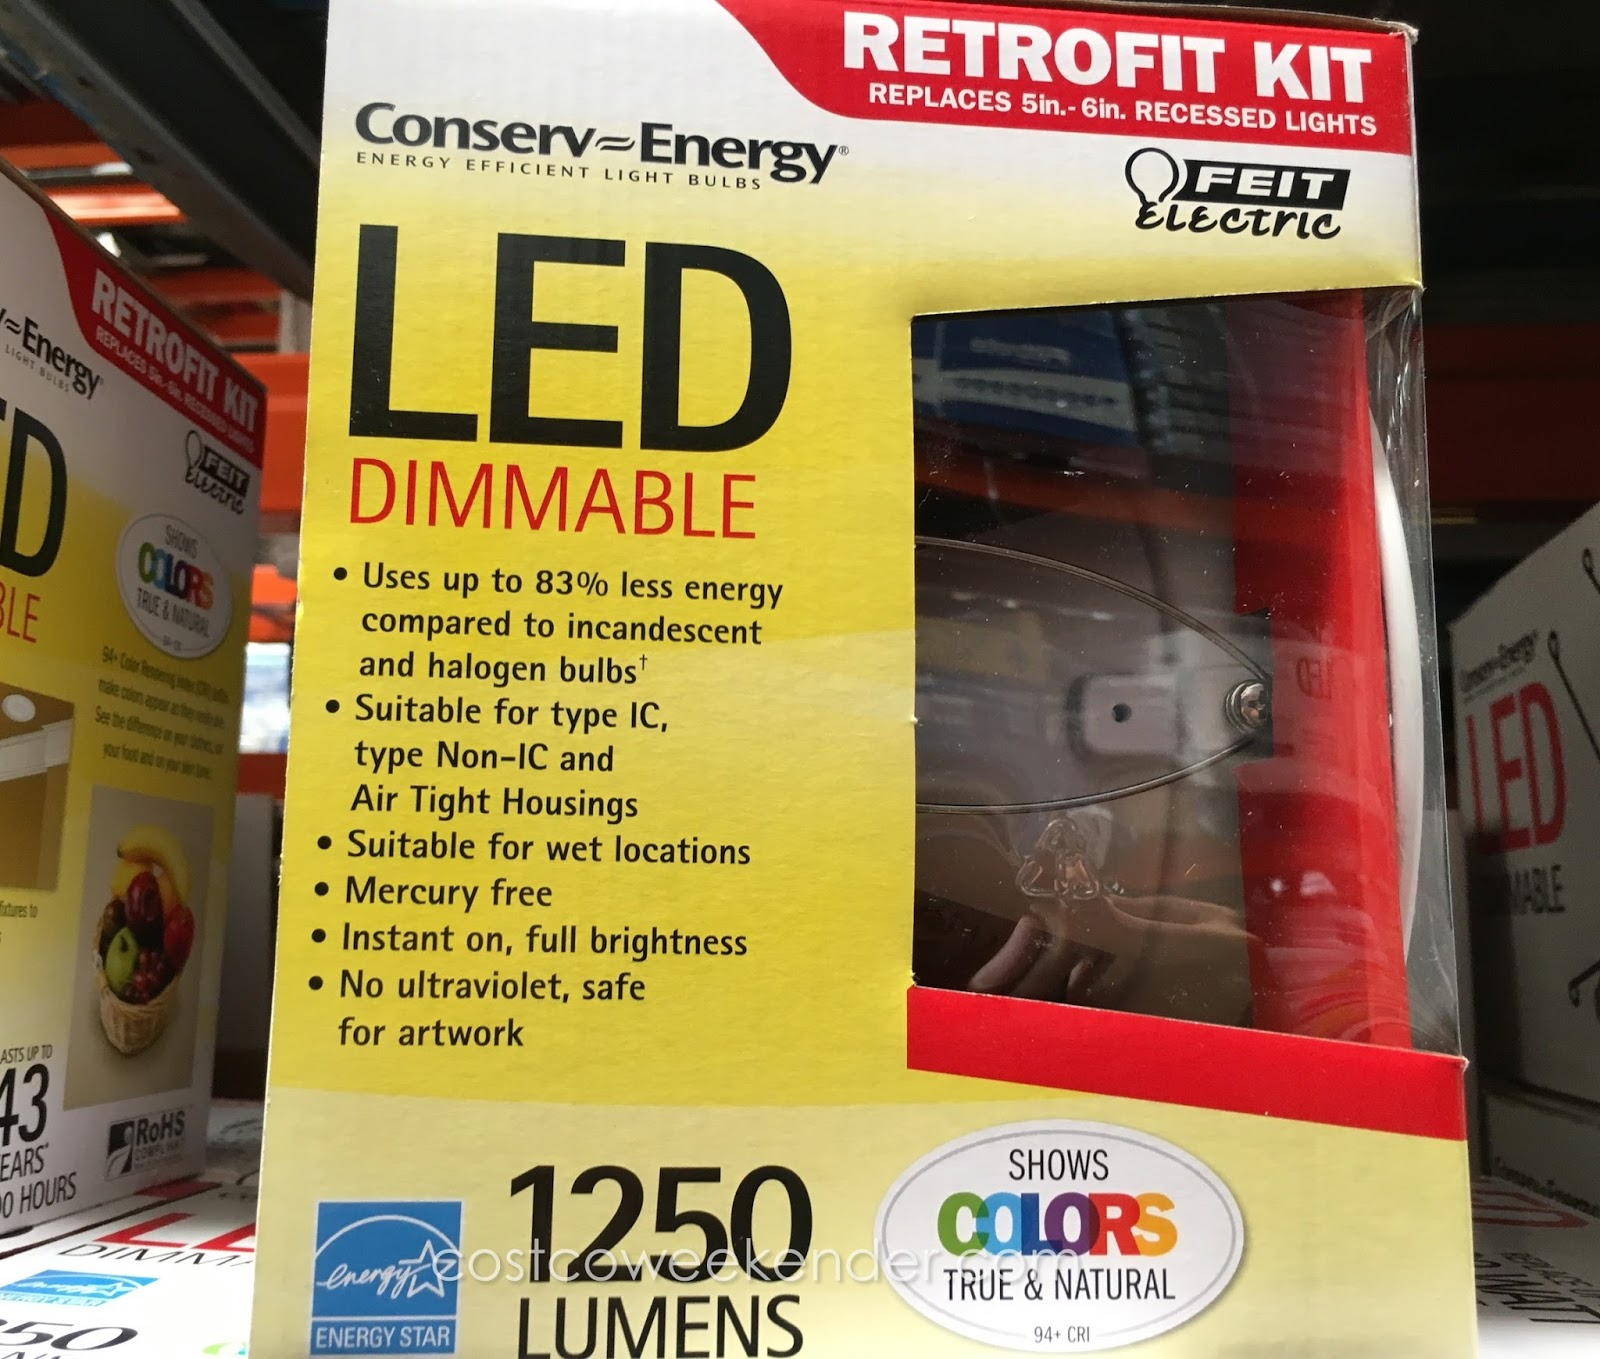 feit-led-dimmable-light-bulb-retrofit-ki